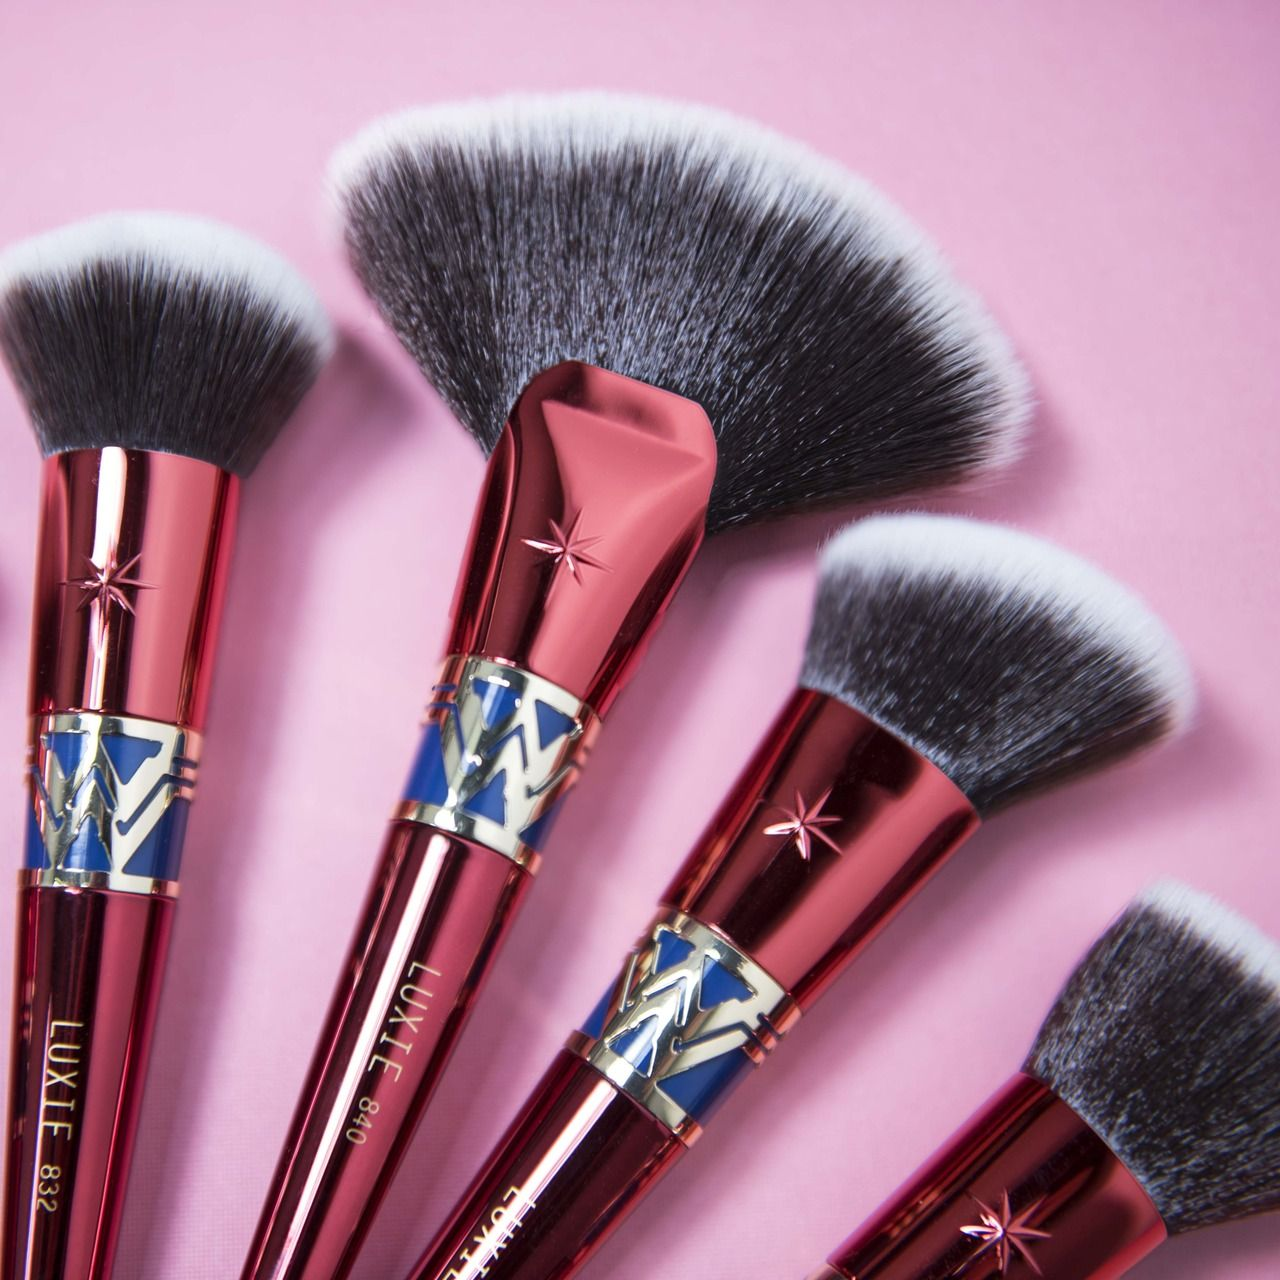 Wonder Woman makeup brush collection by Luxie Beauty